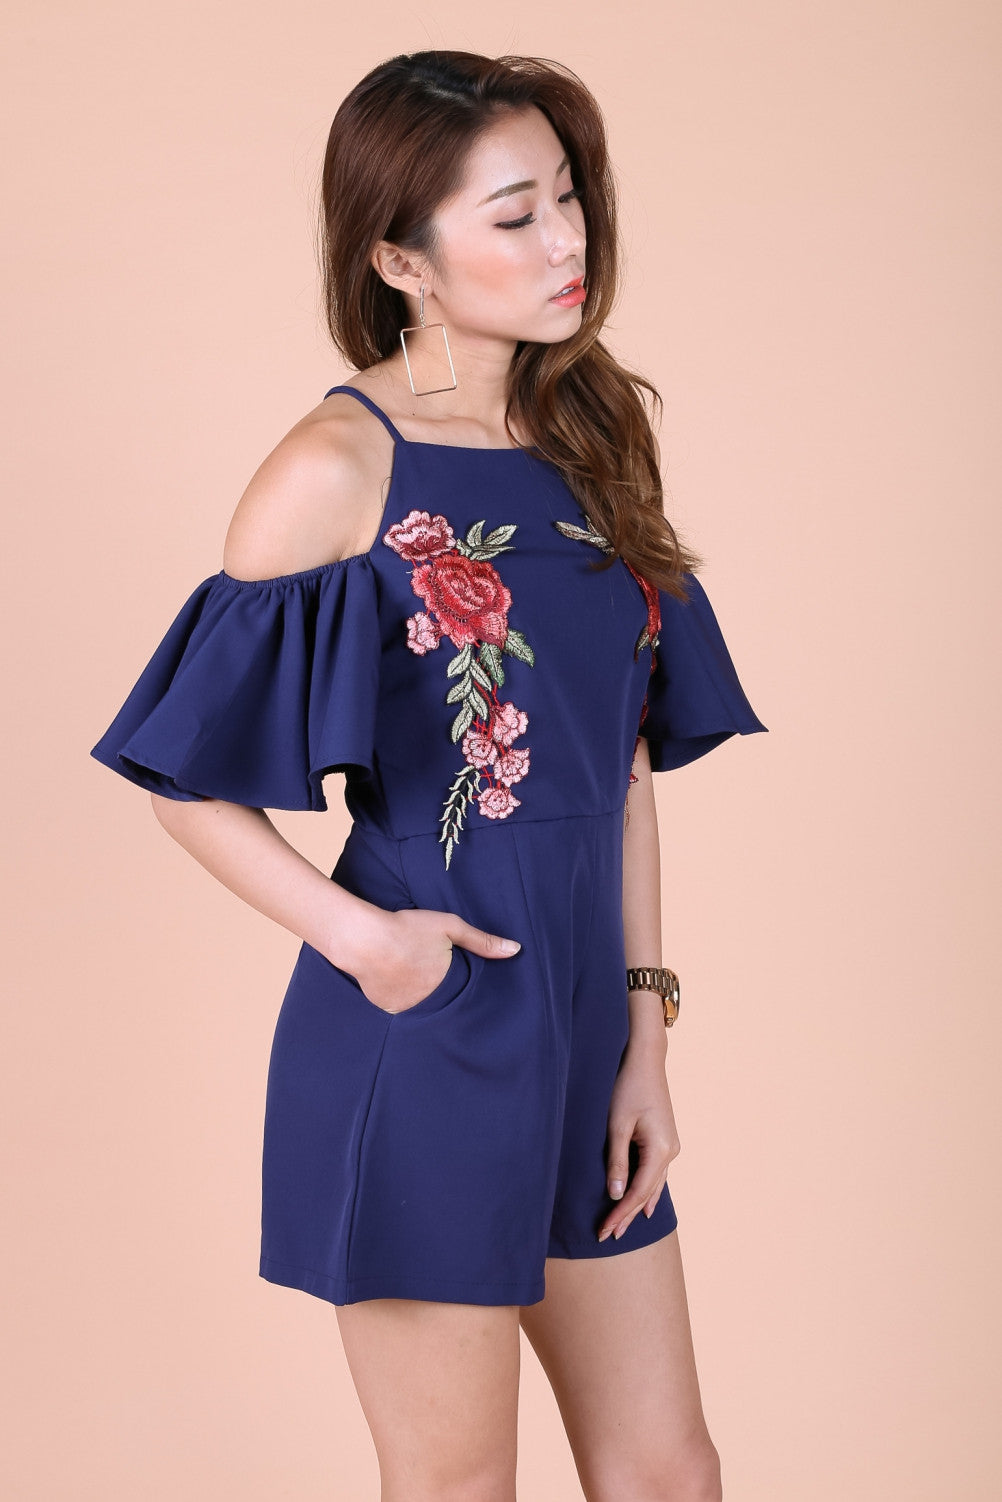 *TOPAZ* (PREMIUM) VITA ROSE EMBROIDERY COLD SHOULDER ROMPER IN NAVY - TOPAZETTE